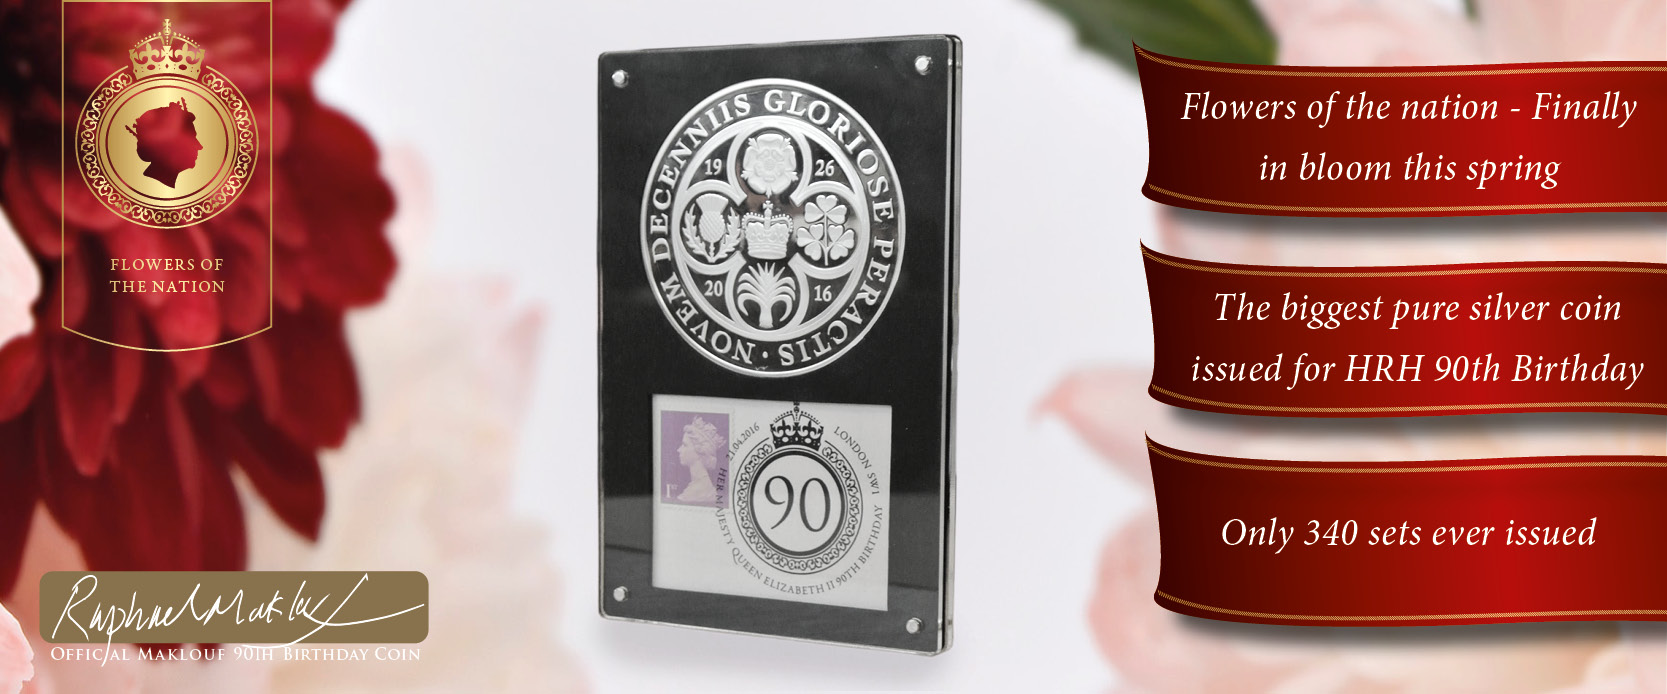 The Queen Elizabeth II 90th Birthday Pure Silver Coin